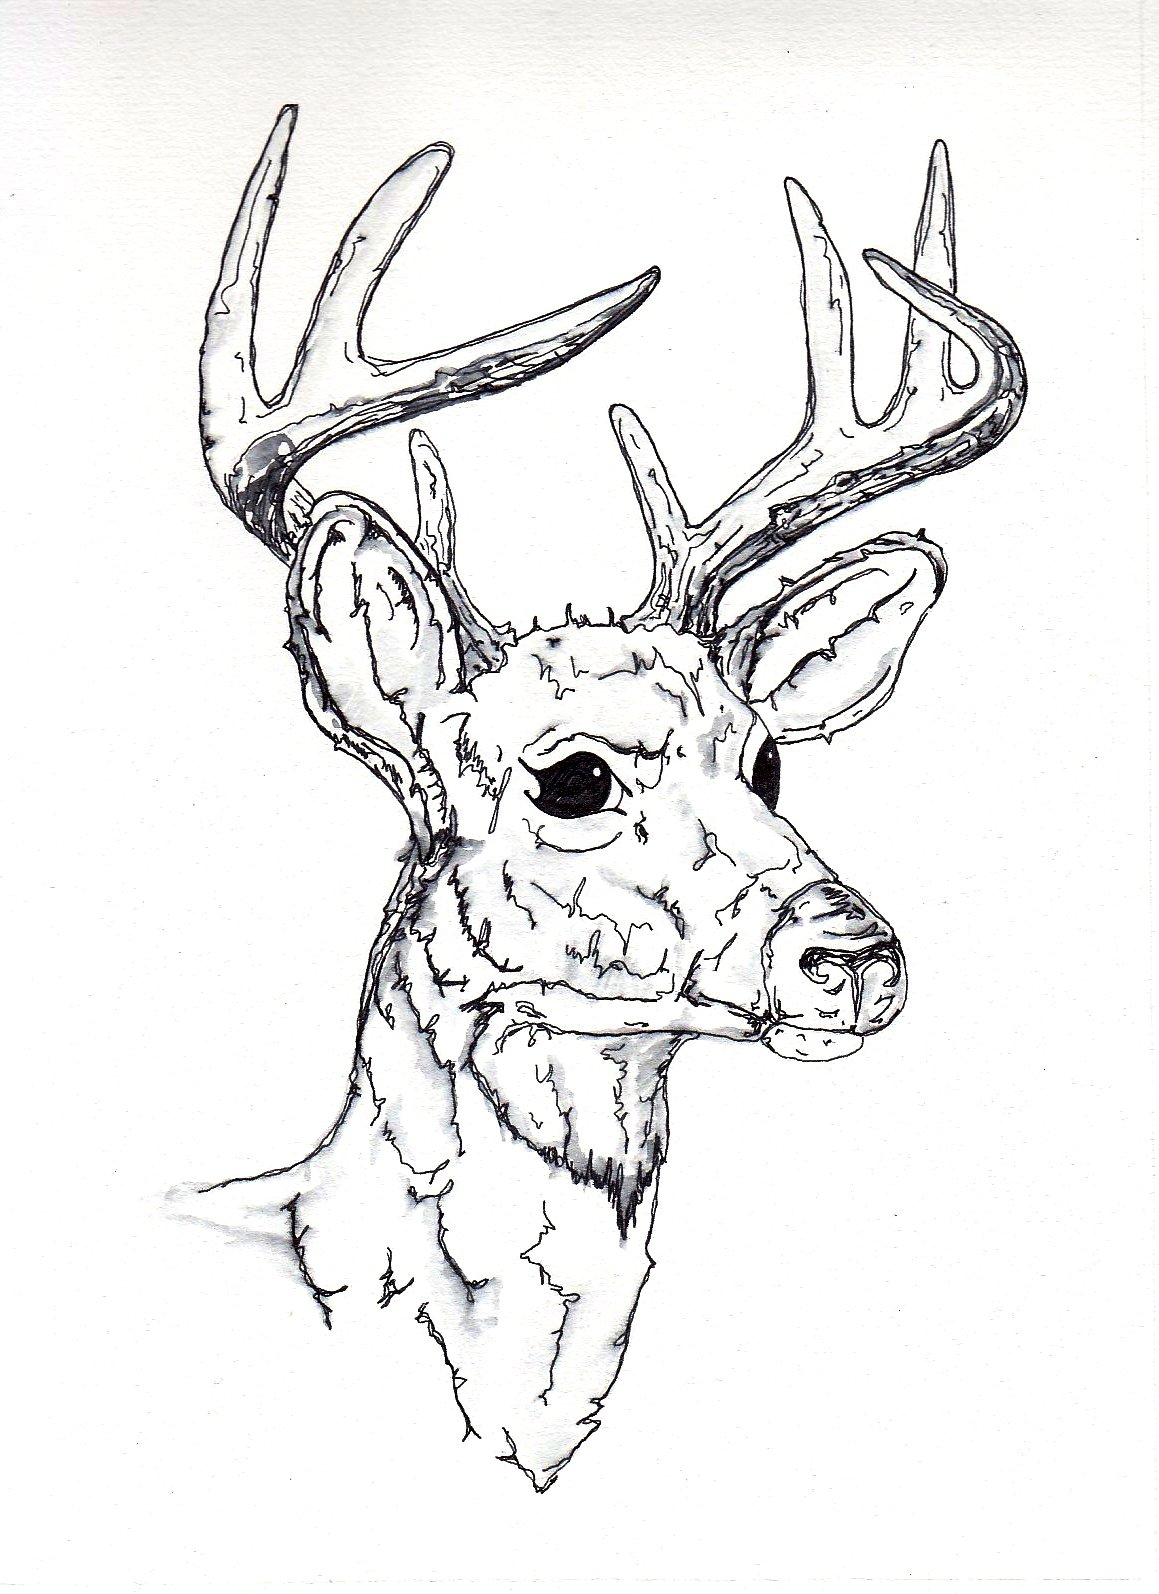 Yecats Wolliw: Stag drawings